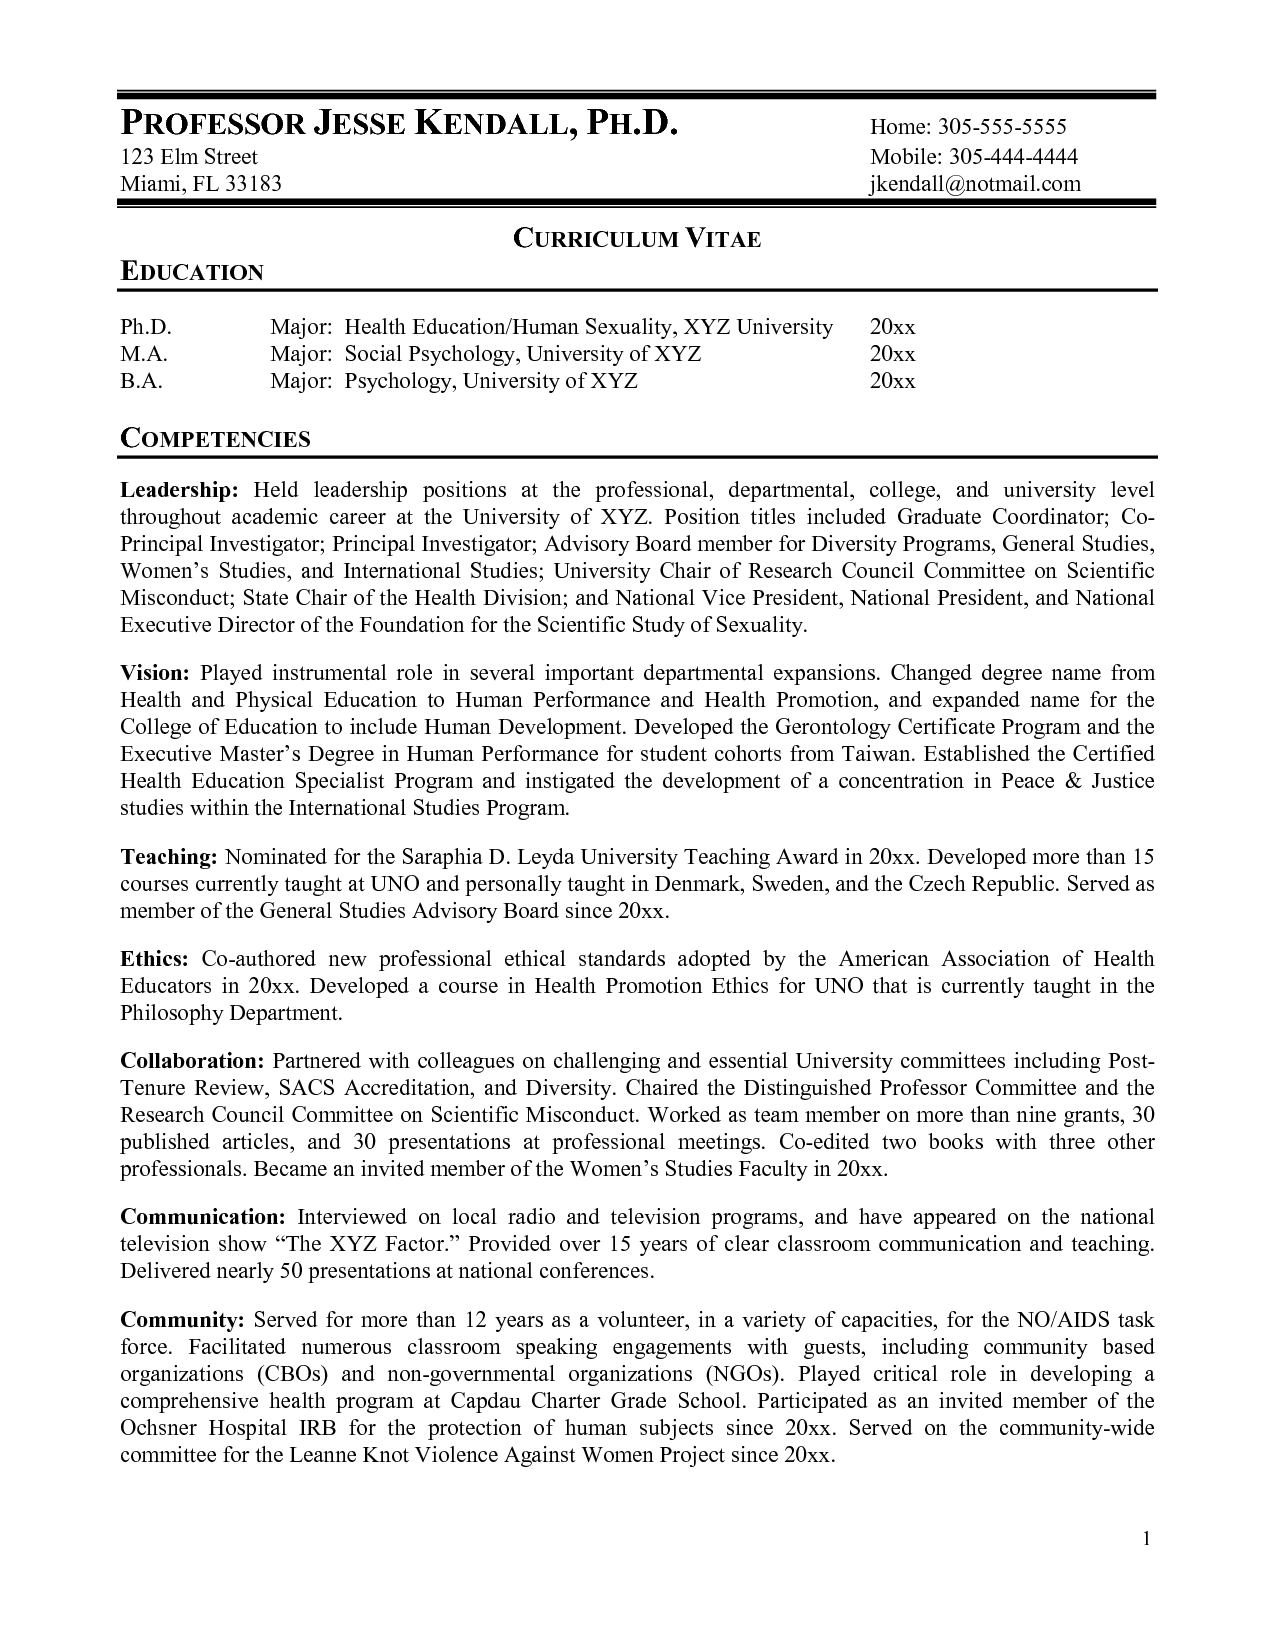 professor resume sample ~ Gopitch.co